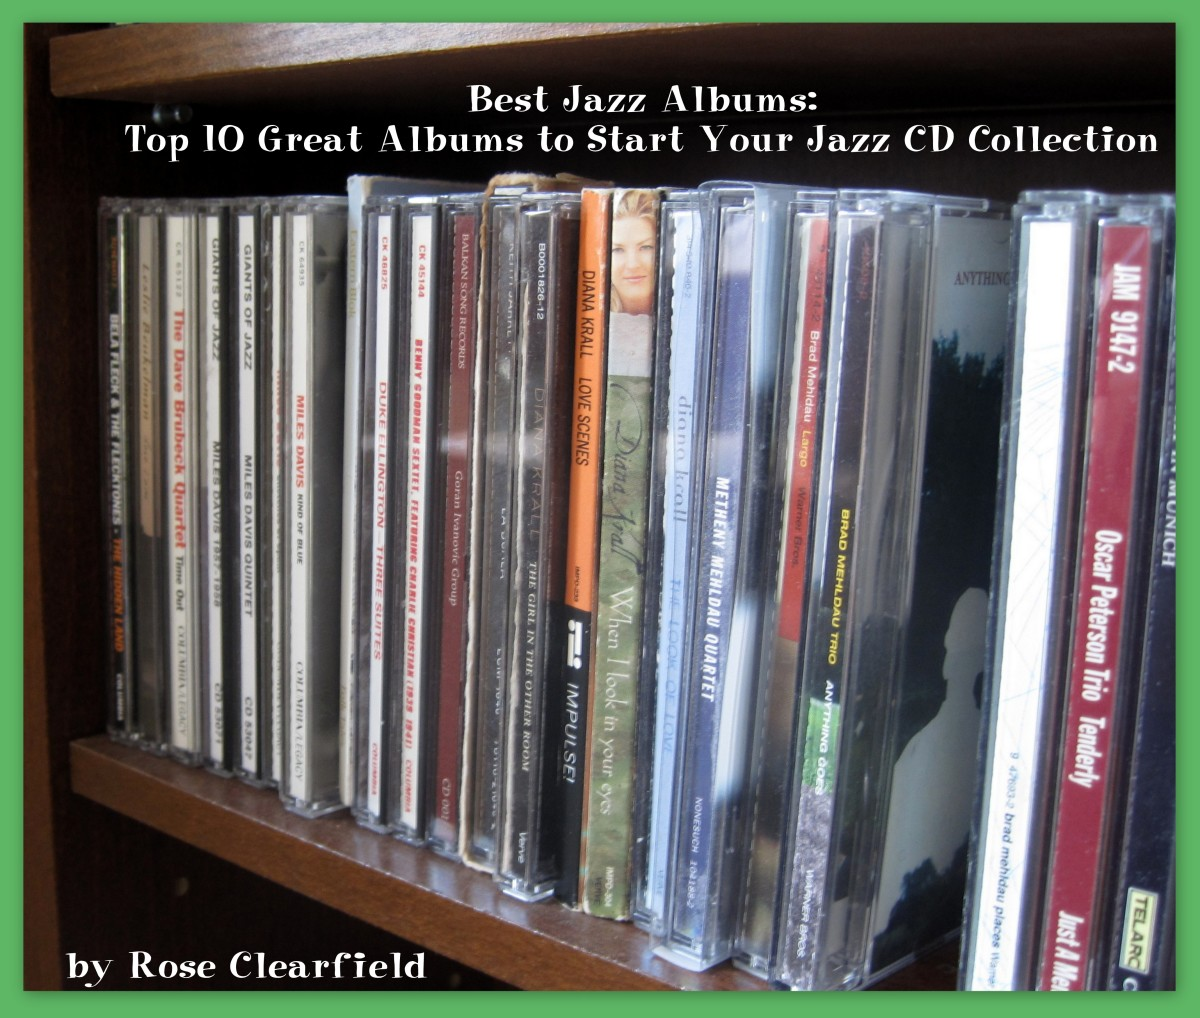 10-albums-to-start-your-jazz-cd-collection